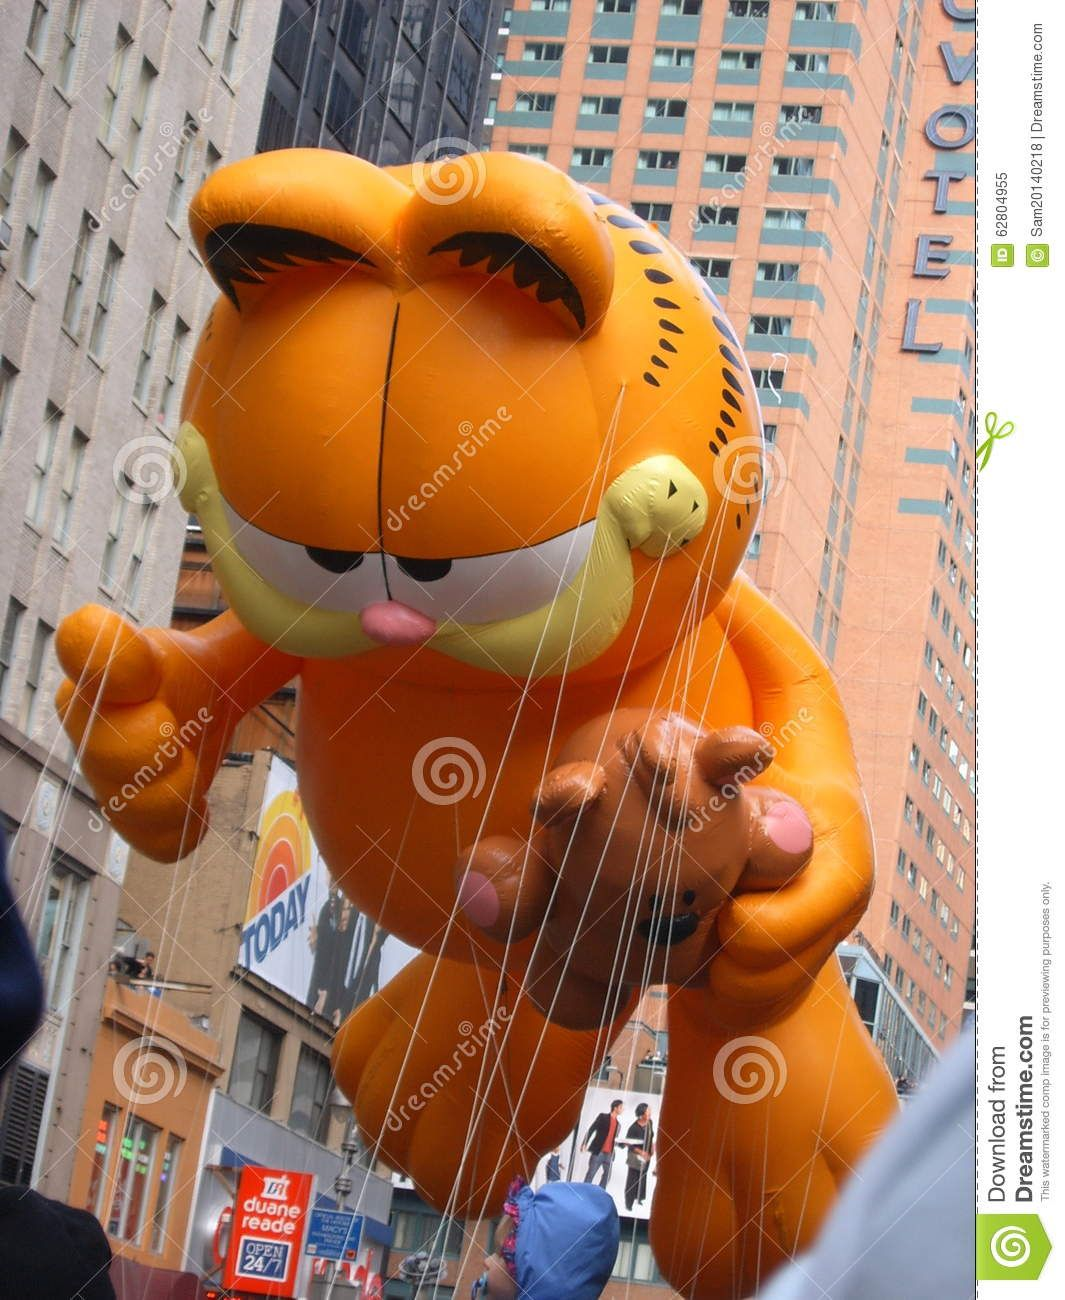 Garfield Balloon In Macy 39 S Thanksgiving Day Parade Editorial Image Thanksgiving Day Parade Macy S Thanksgiving Day Parade Macy S Thanksgiving Day Parade